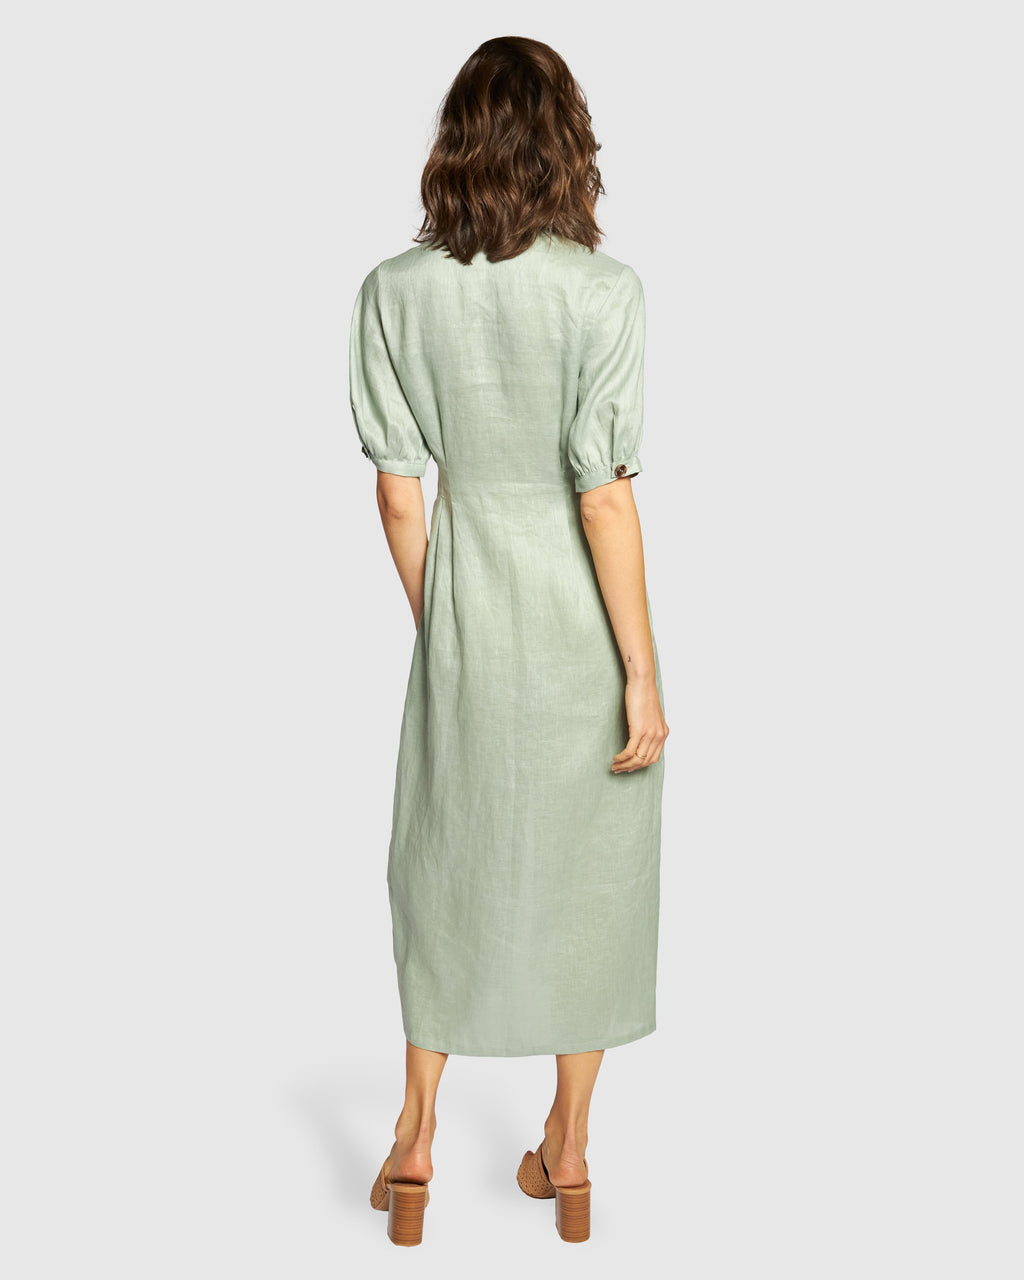 Apero Sail Away Linen Midi Dress - Sage